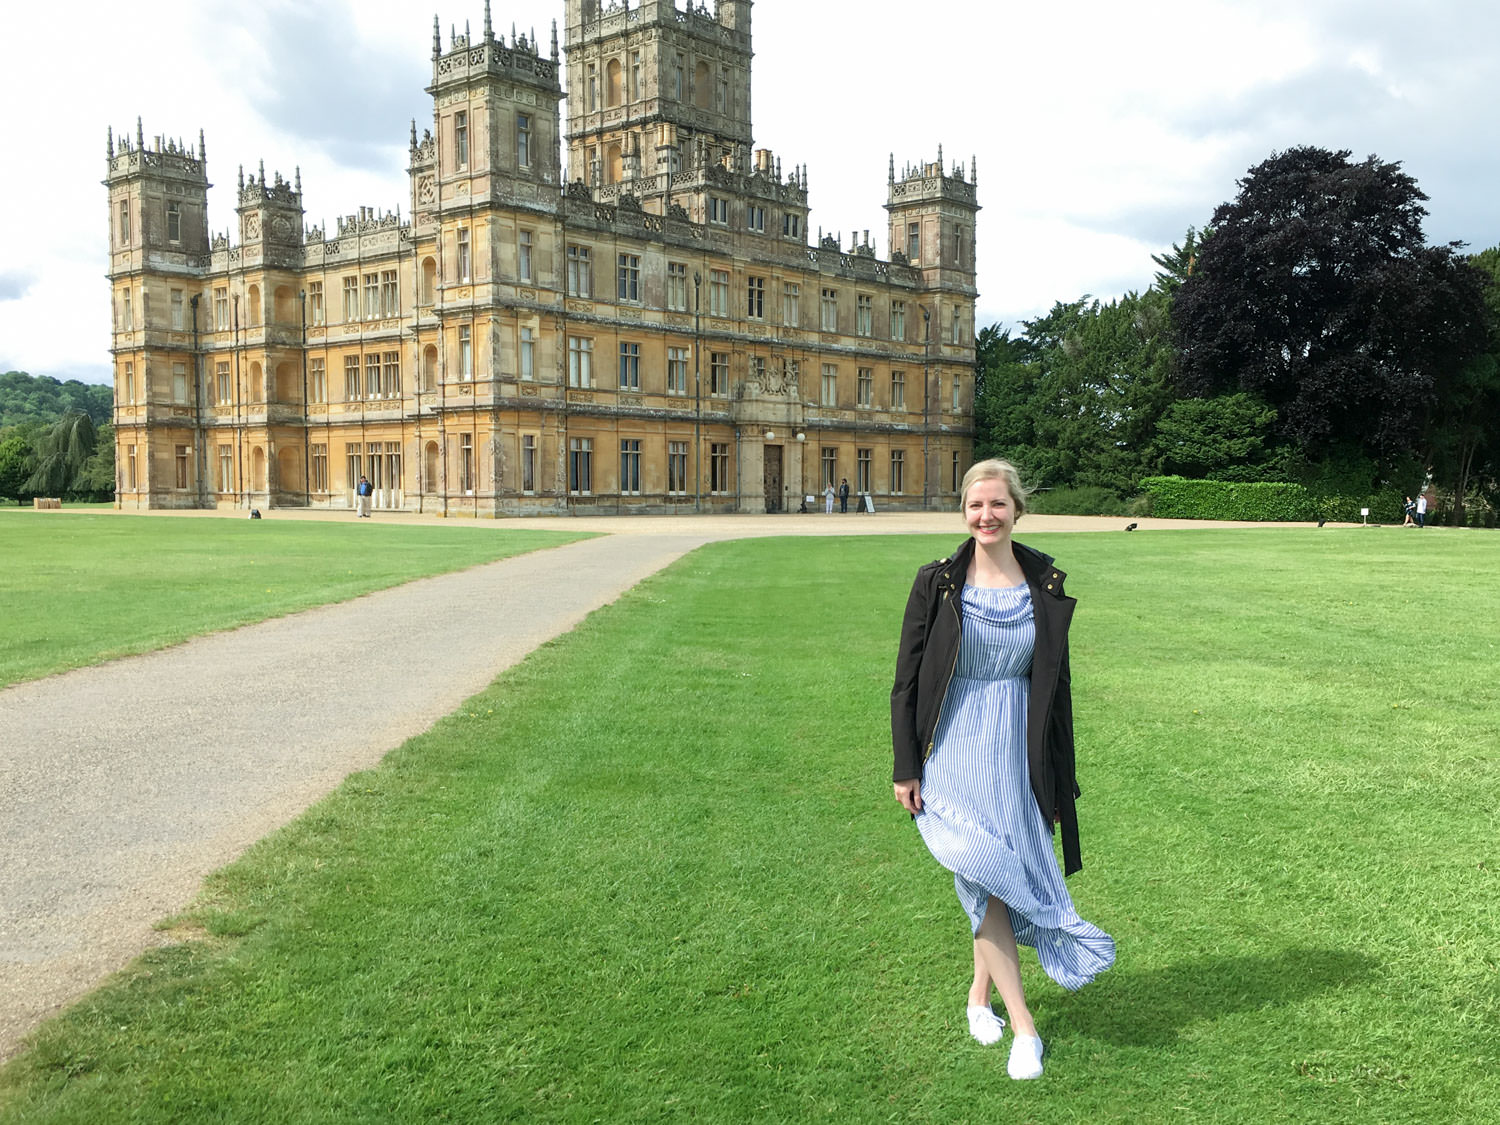 Visiting Highclere Castle in England where Downton Abbey is filmed